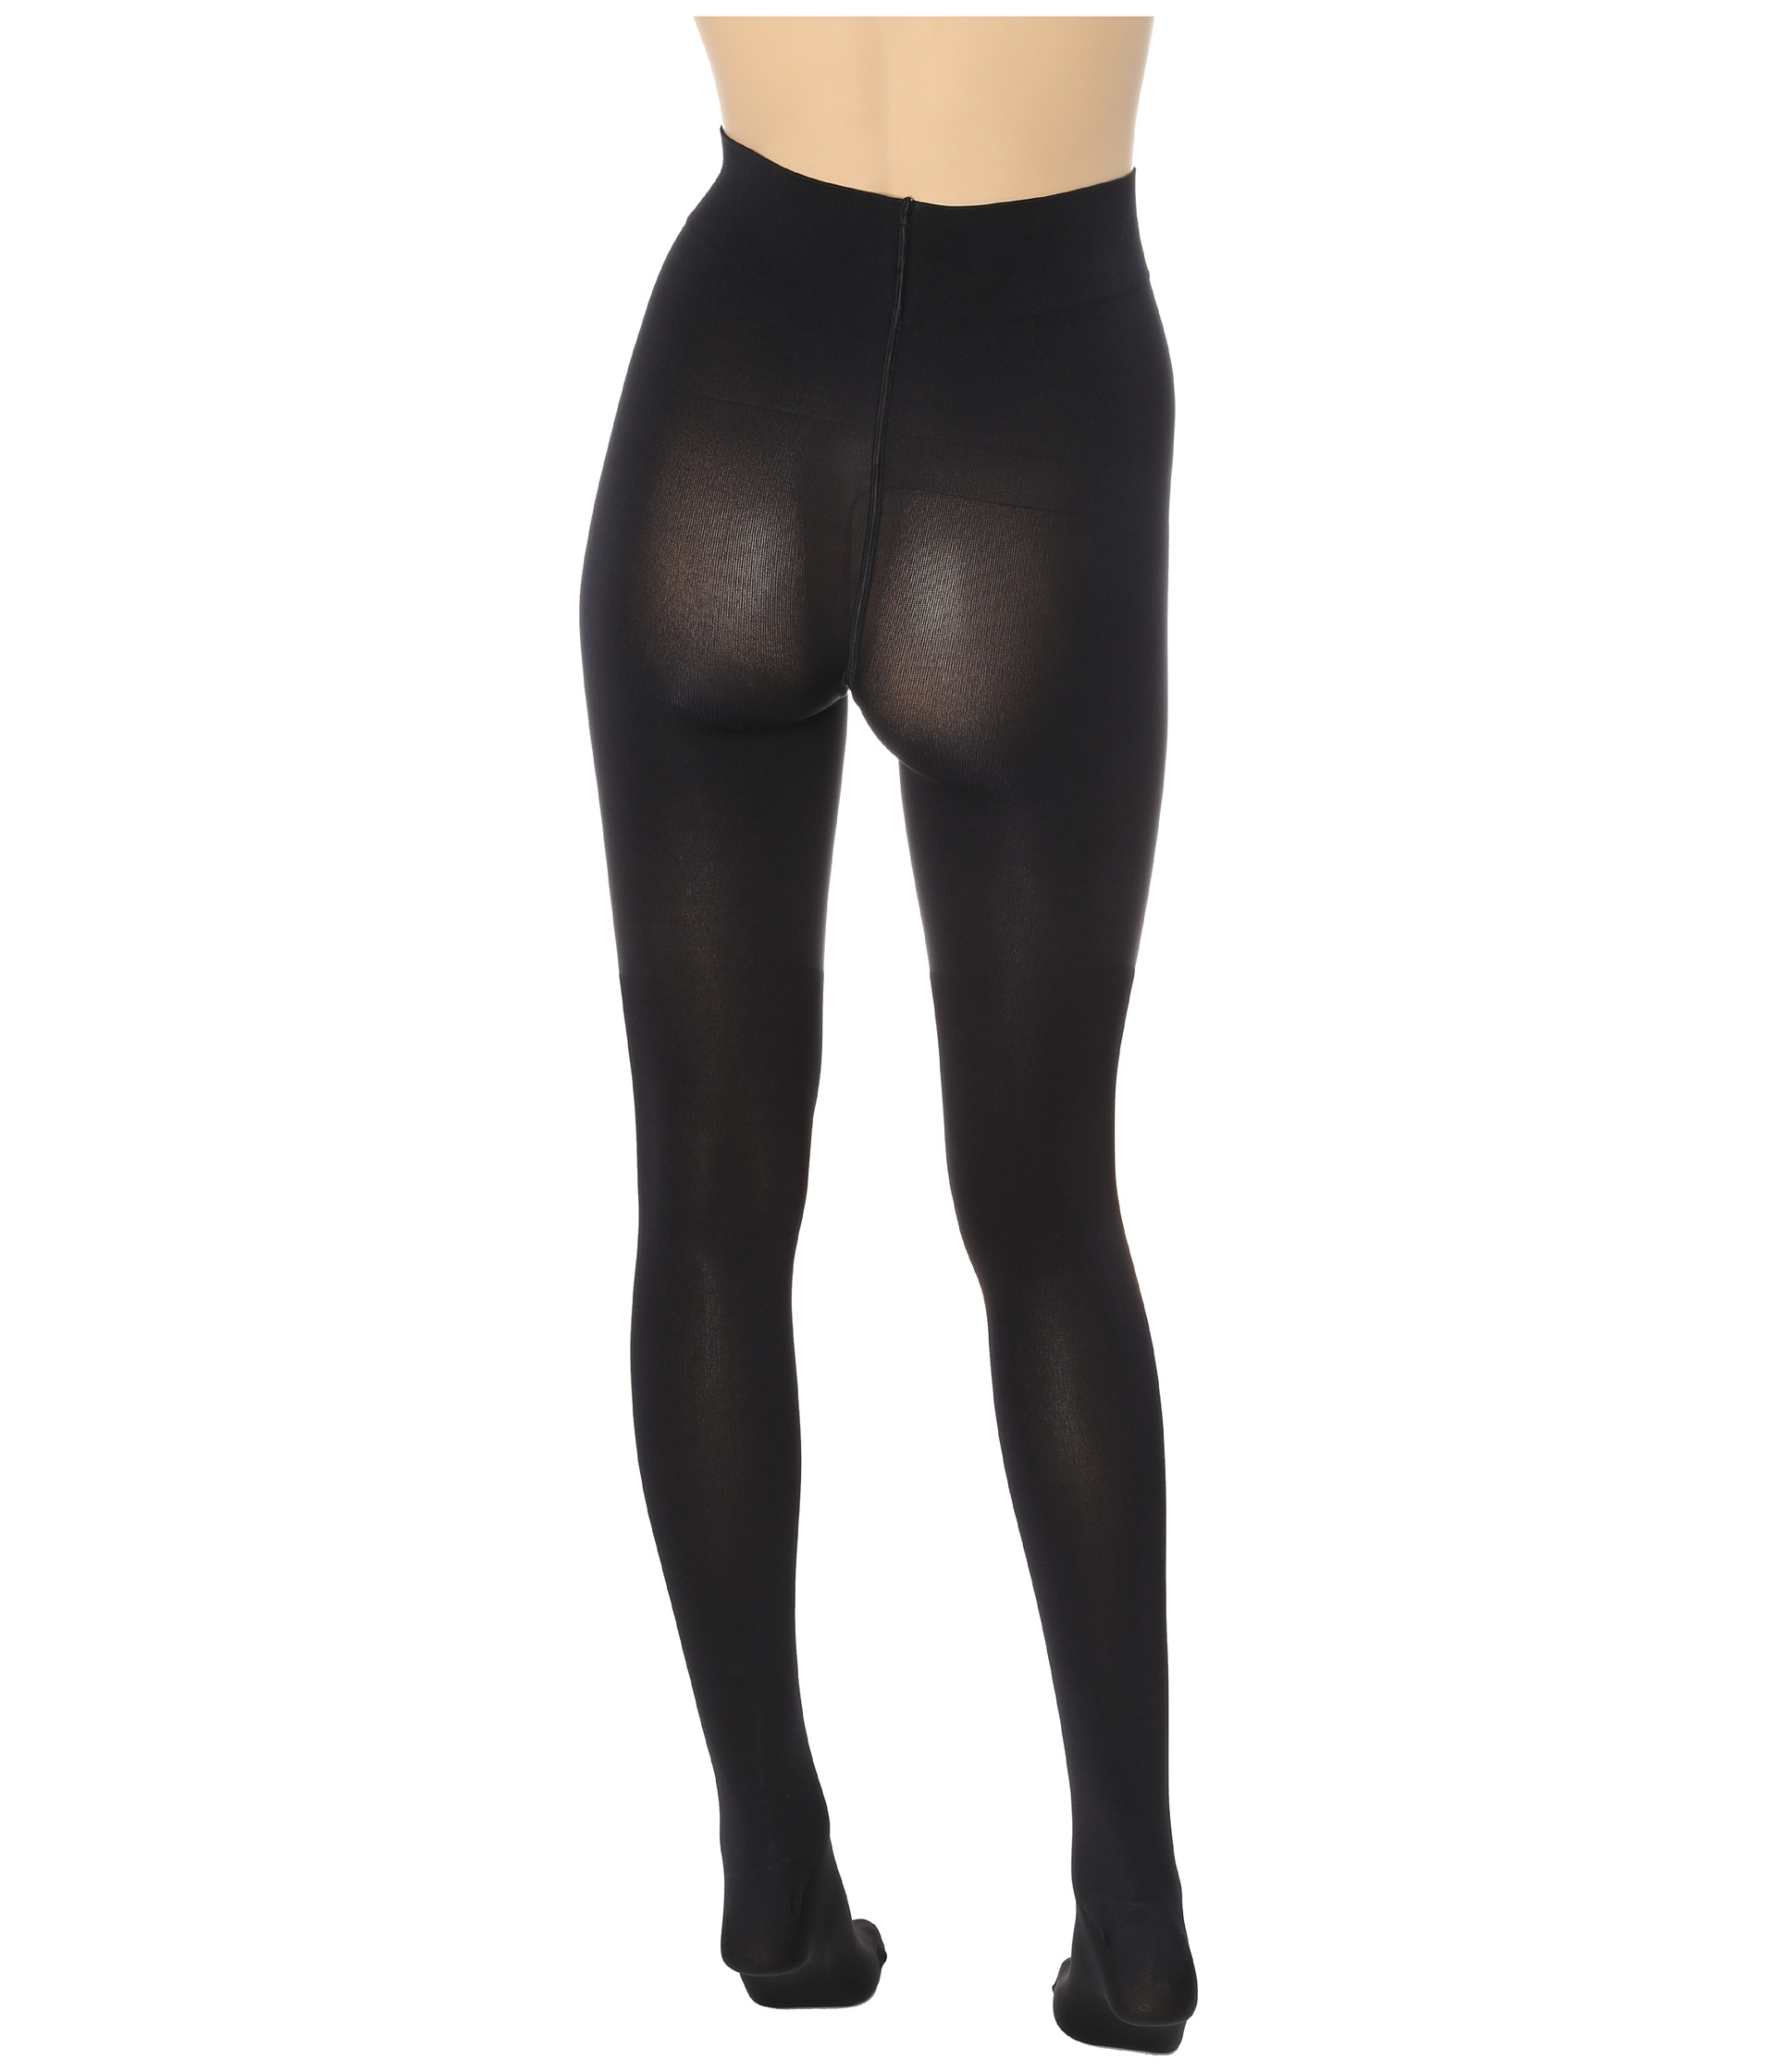 Compression stockings are used to support the venous and lymphatic systems of the desire-date.tk Over $50 Ship Free· Low Price Guarantee· Easy Returns· All Major Brands & StylesStyles: Knee High, Thigh High, Pantyhose, Maternity, Sport, Ankle Length.